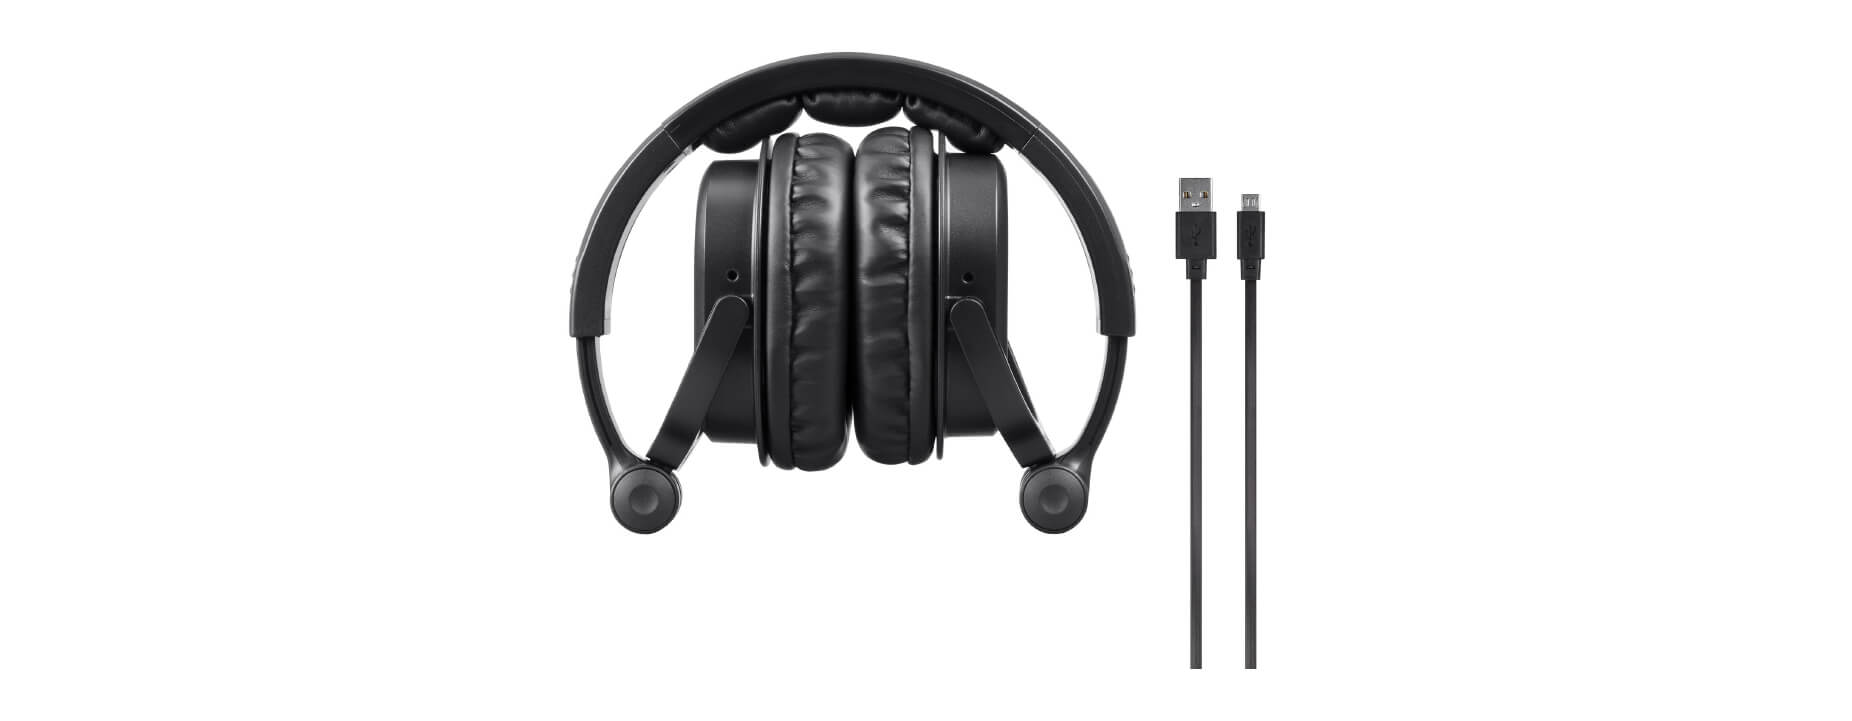 Pro Bluetooth Headphones